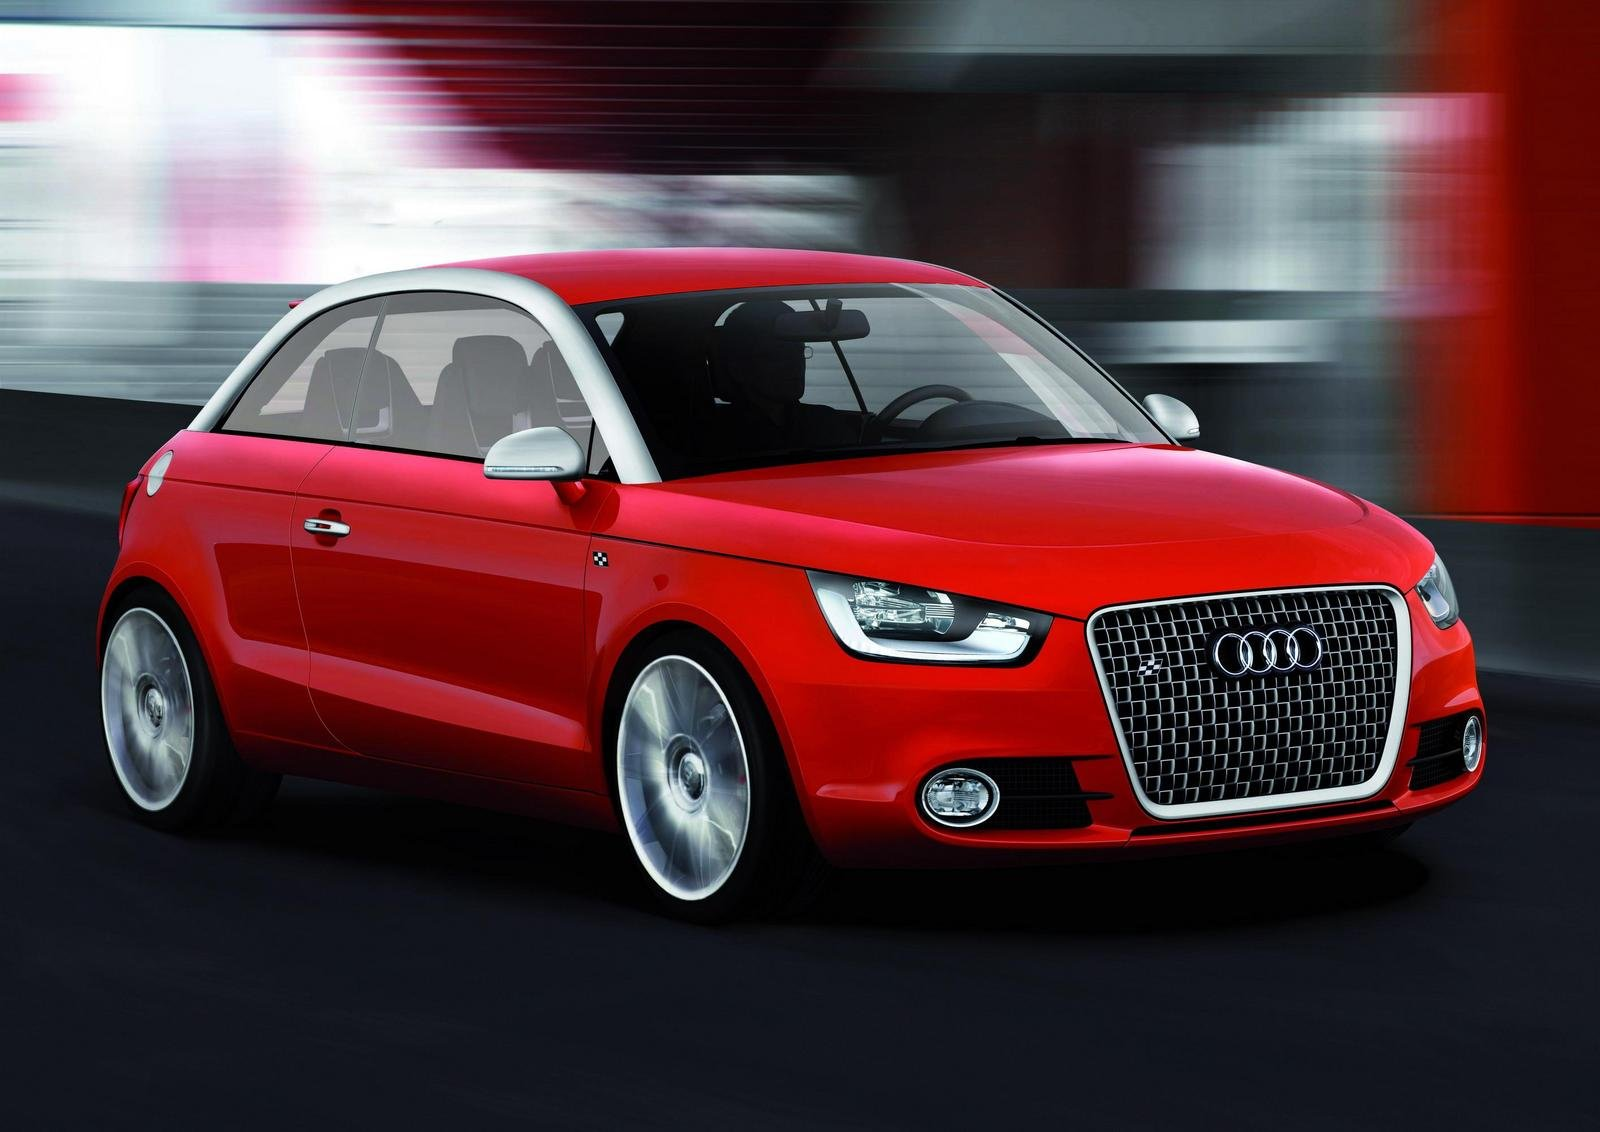 2007 audi a1 metroproject quattro concept picture 207840 car review top speed. Black Bedroom Furniture Sets. Home Design Ideas